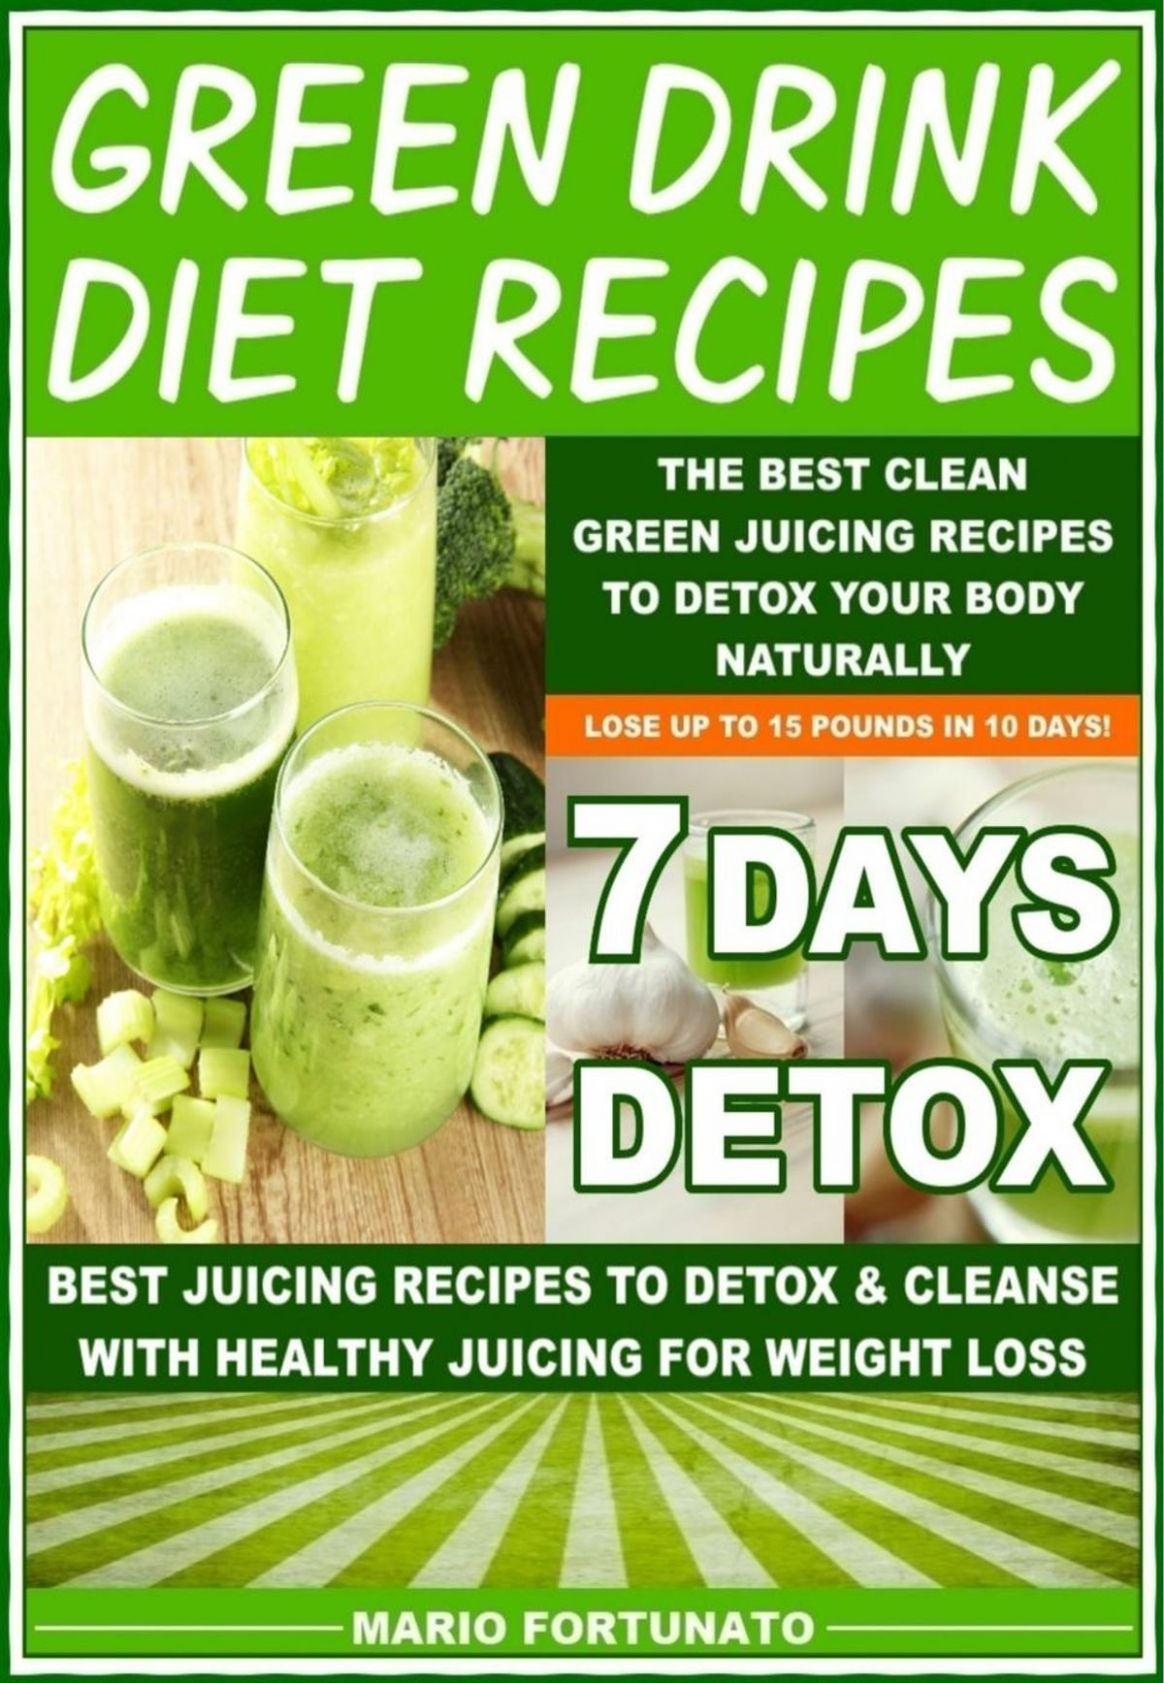 Green Drink Diet Recipes - The Best Clean Green Juicing Recipes to Detox  Your Body Naturally ebook by Mario Fortunato - Rakuten Kobo - Juicing Recipes For Weight Loss Green Juice